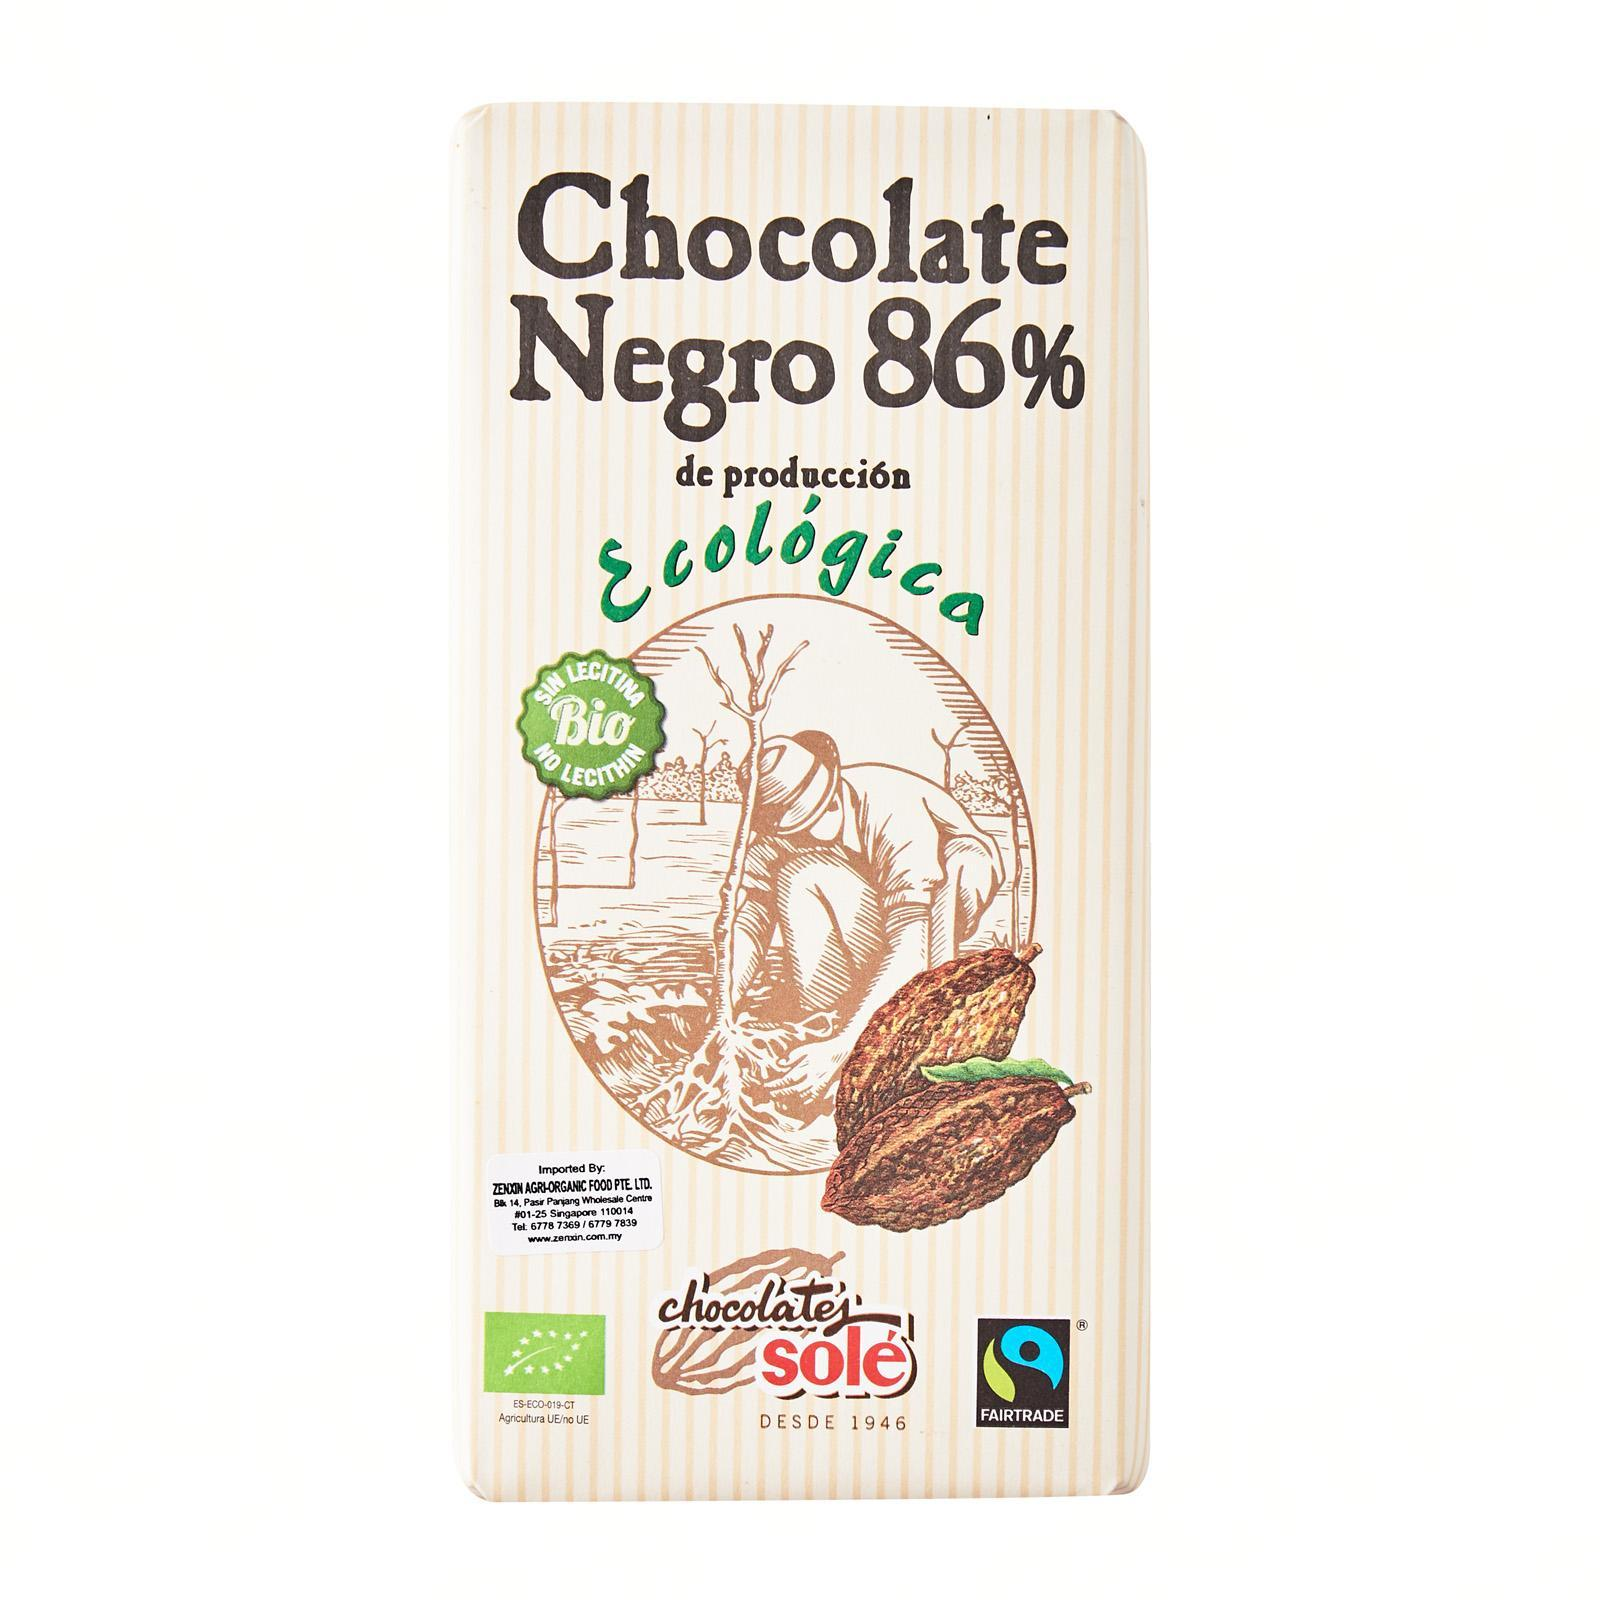 Chocolates SOLE Organic Dark chocolate 86 - percent - Simply Natural by Zenxin